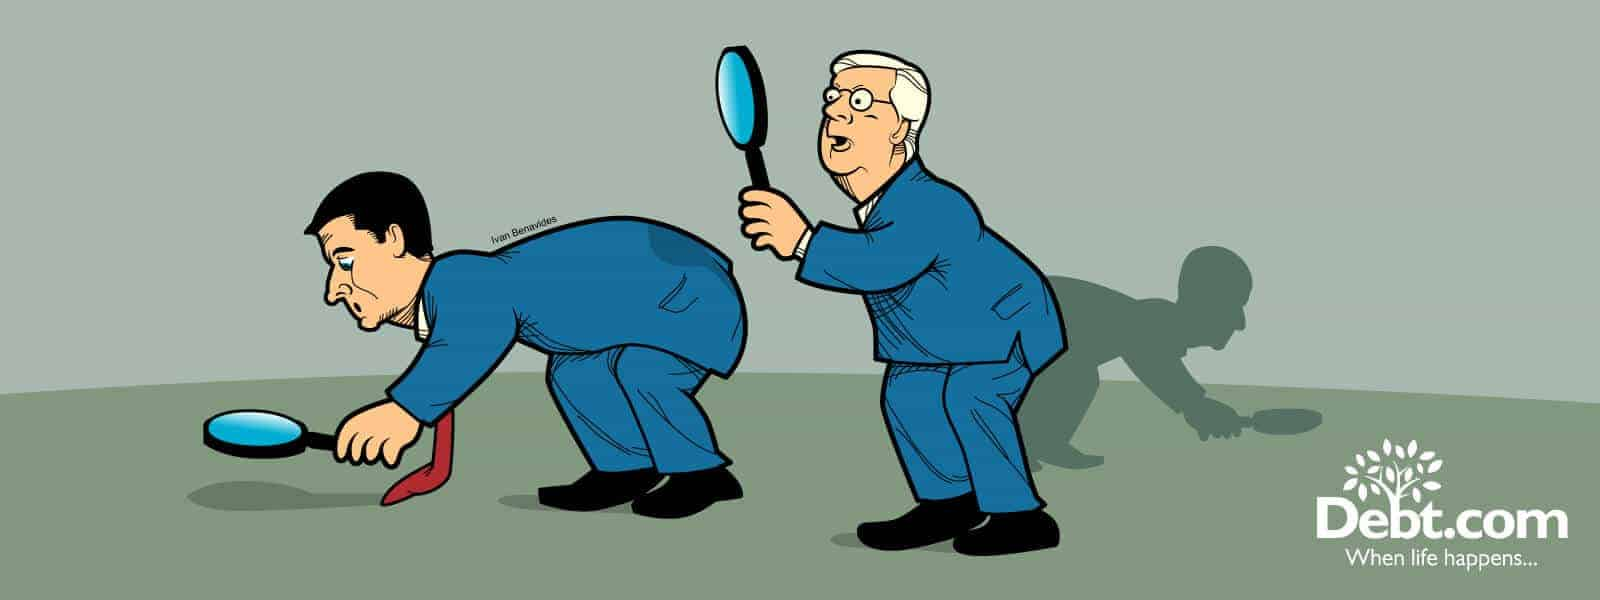 Paul Ryan and Mitch McConnell search for good legislative ideas (illustrated)